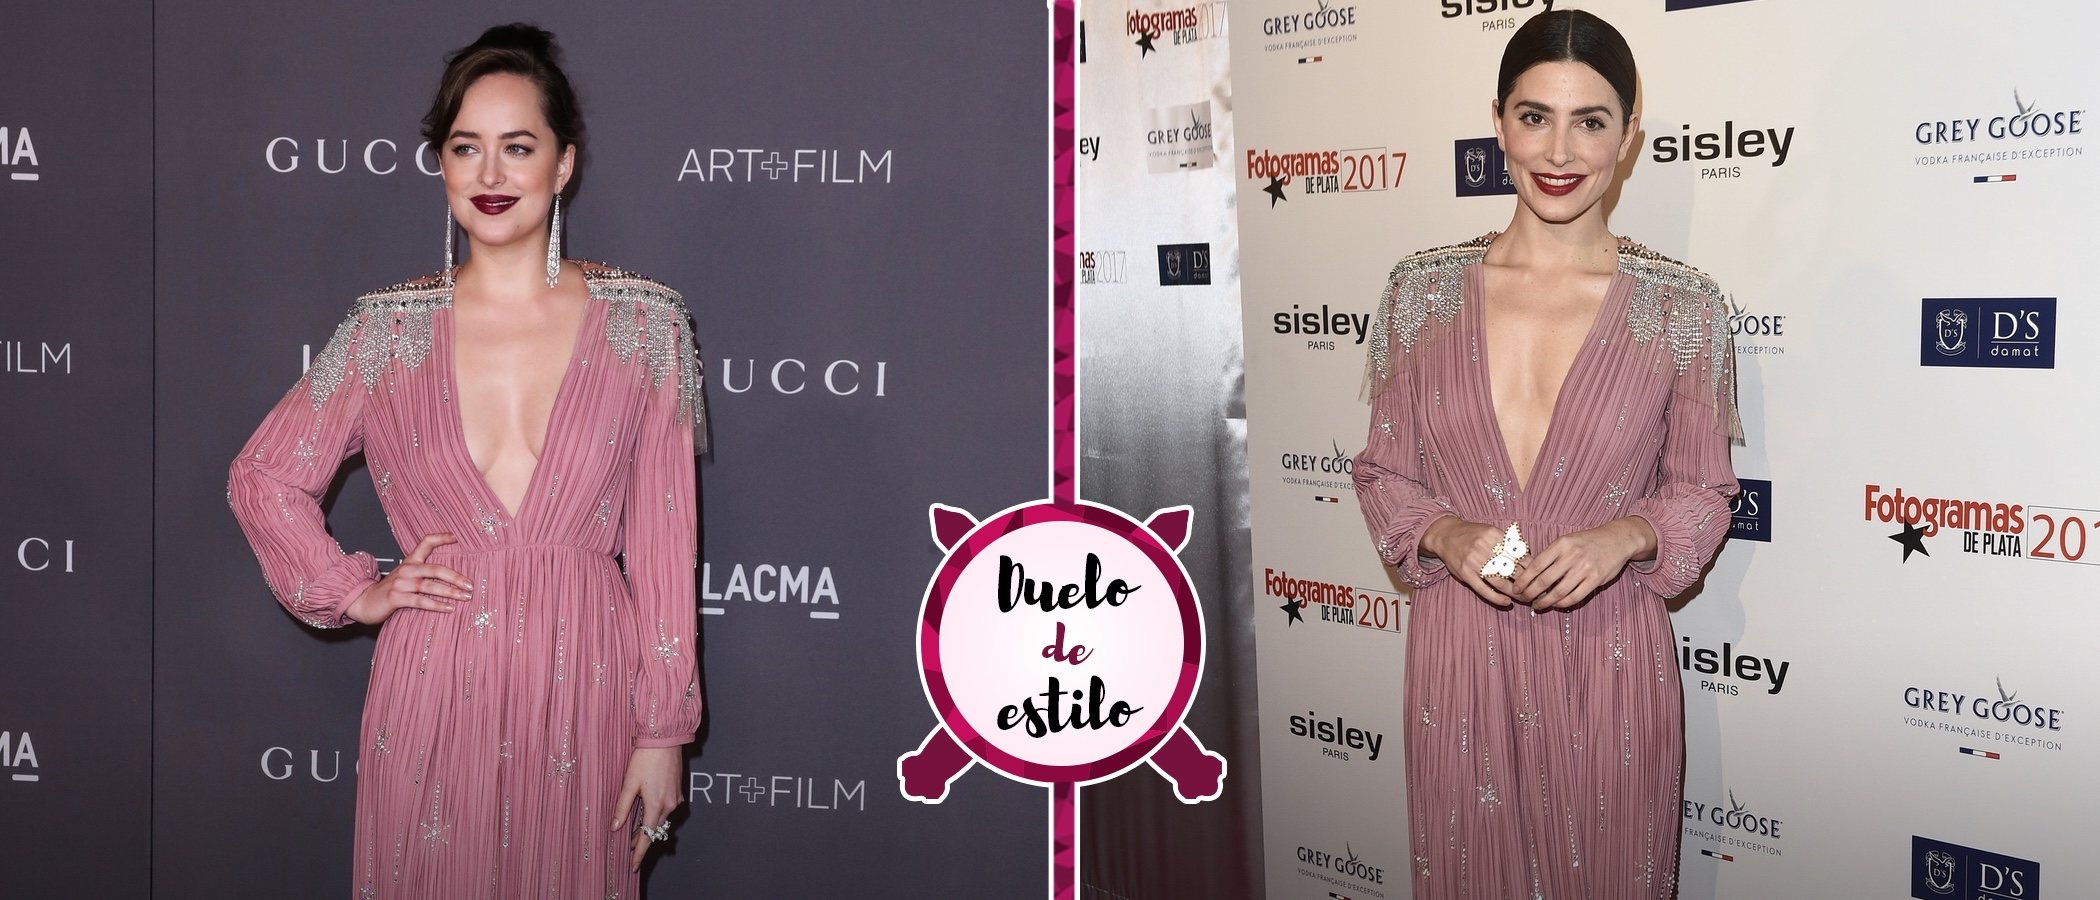 Un mismo look para dos actrices: Dakota Johnson, Bárbara Lennie y el vestido de Gucci